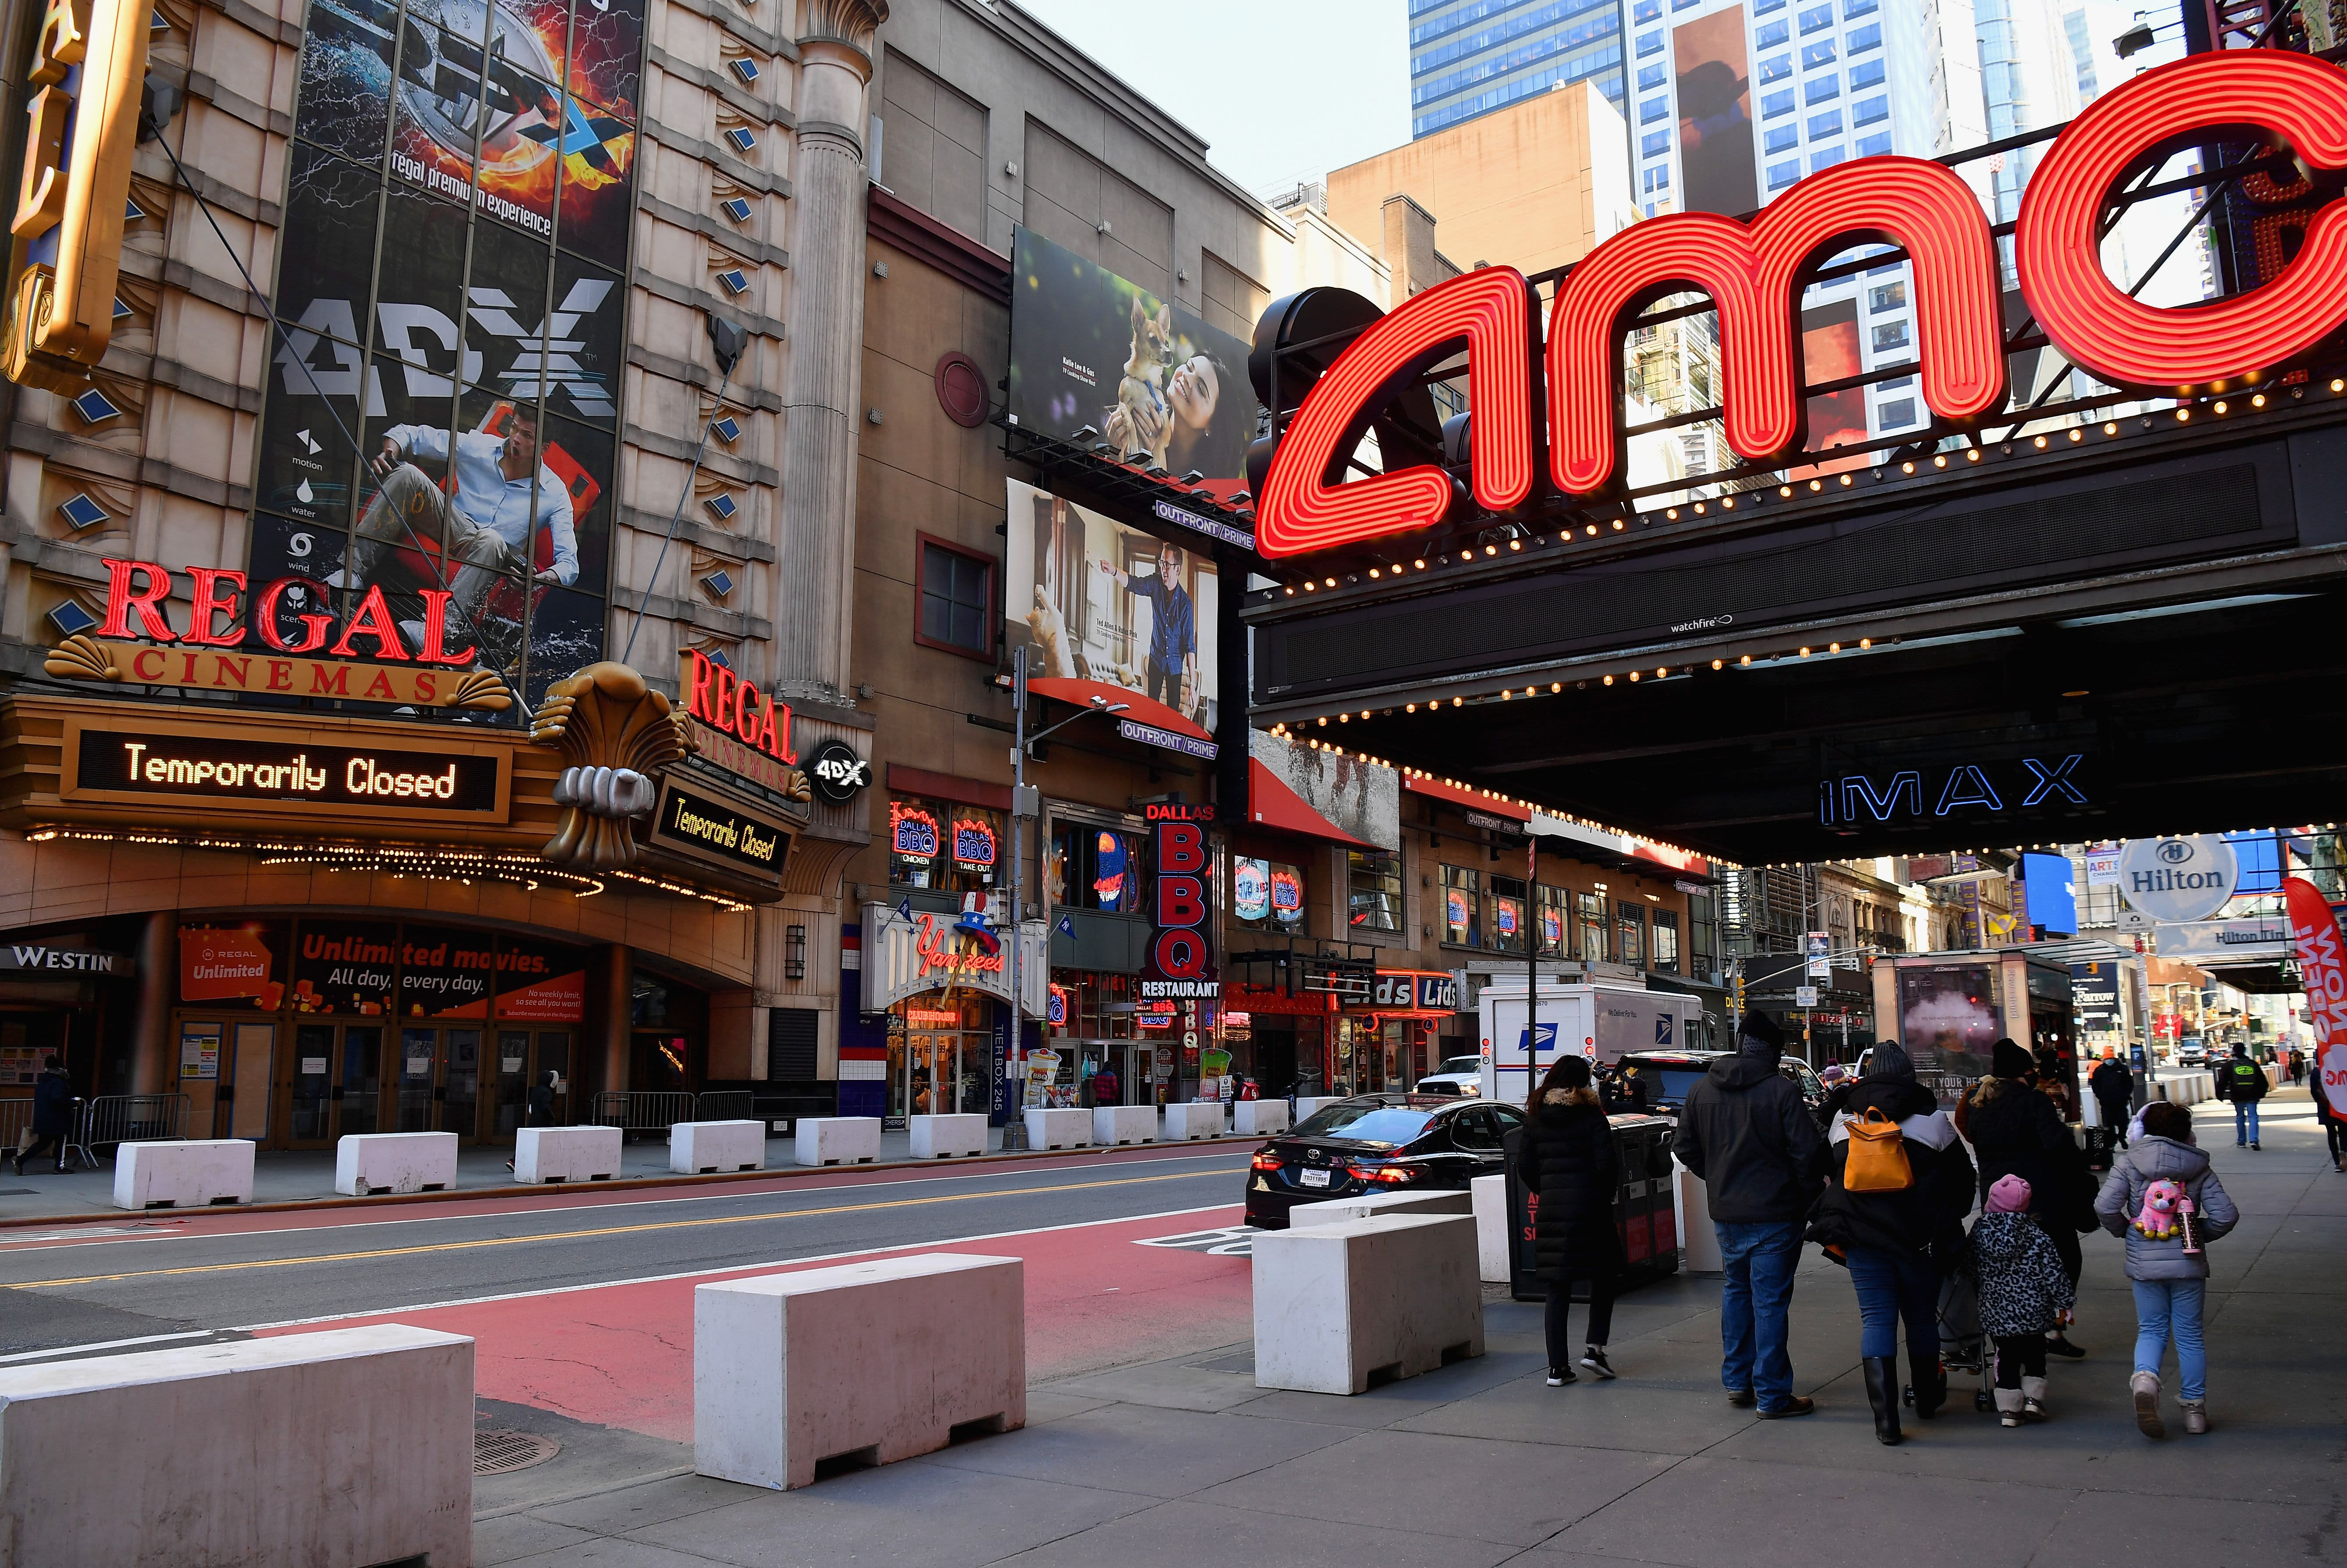 Meme stock AMC extends rally, jumps 19% as theater chain sells new shares to an investor